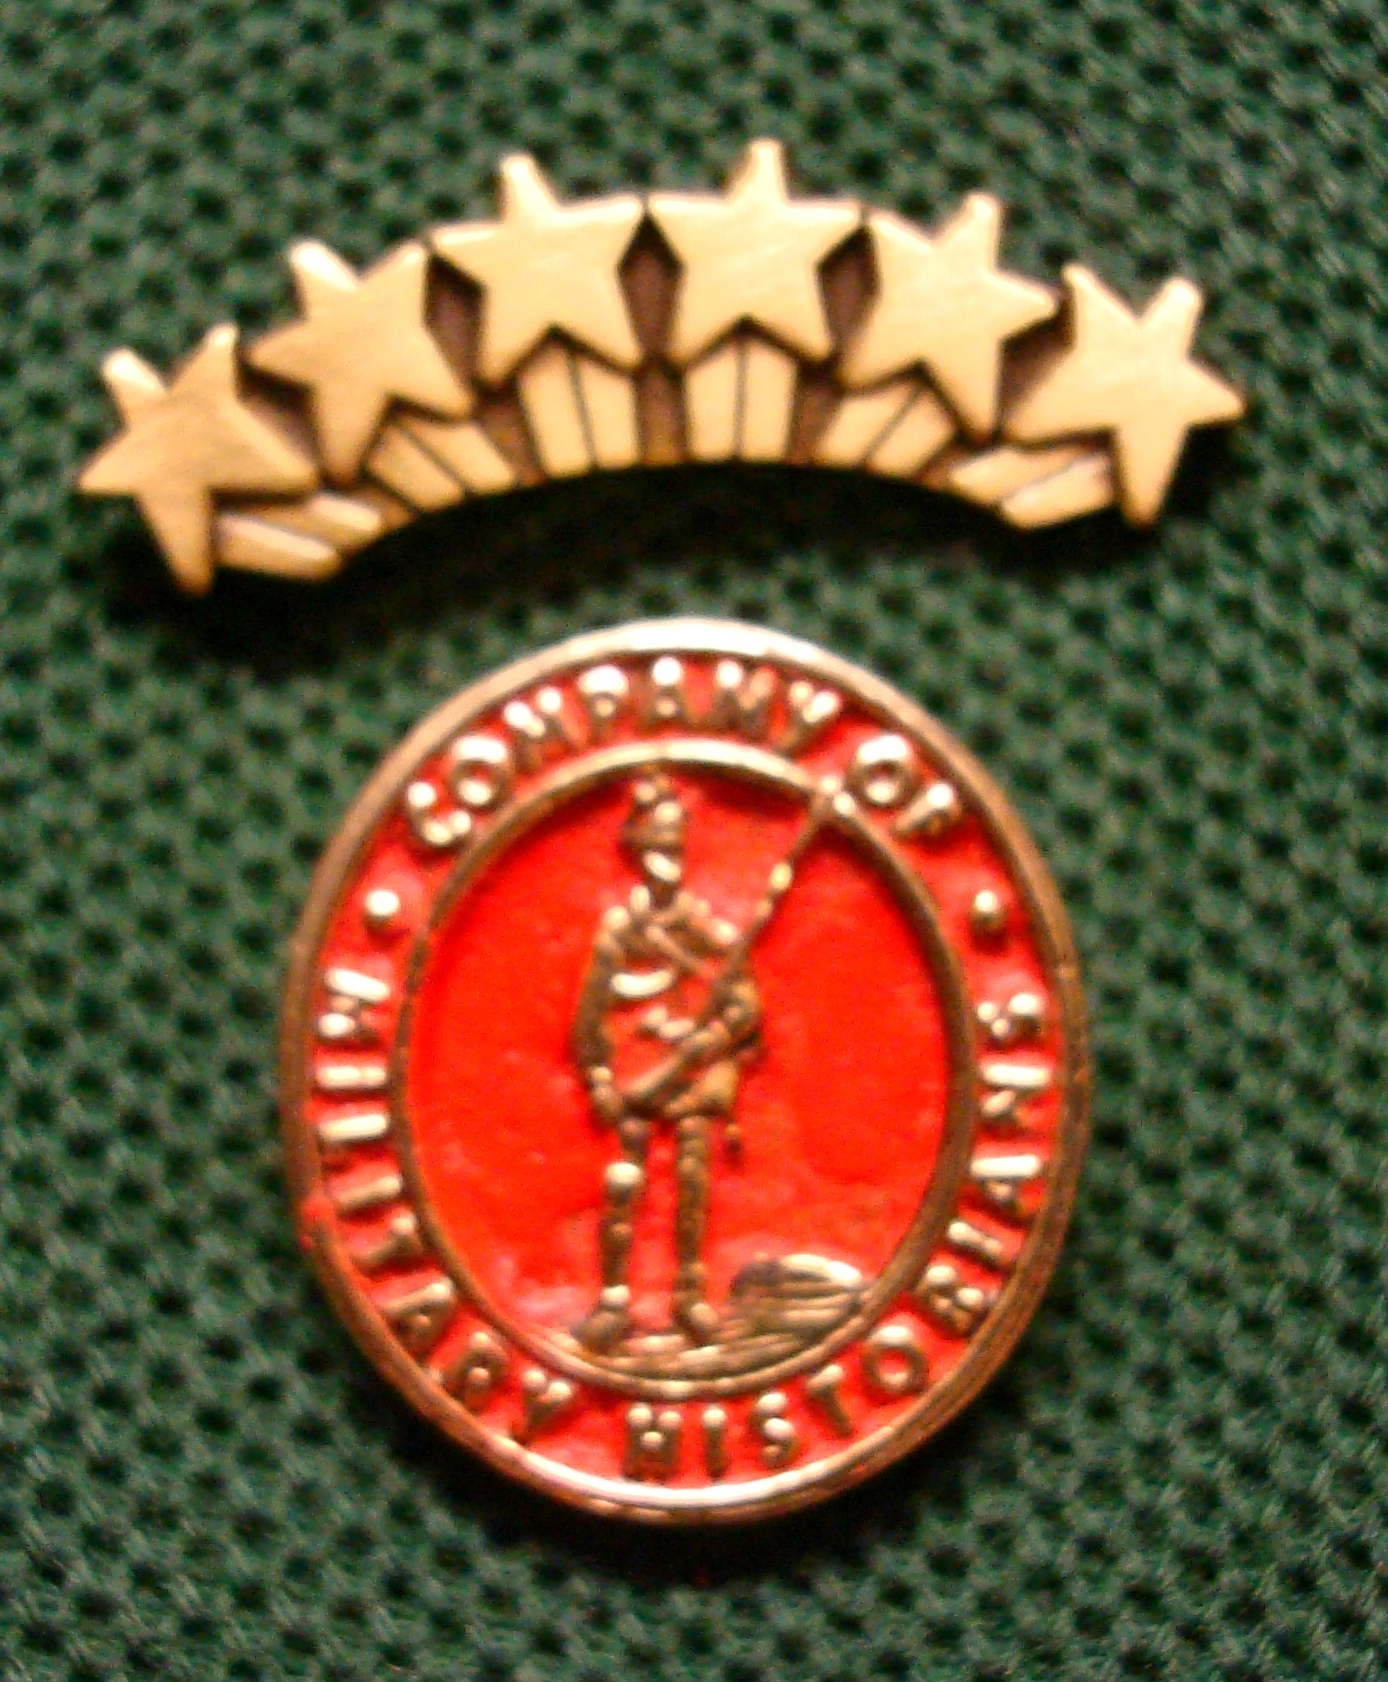 Founders Pin with Fellow Pin